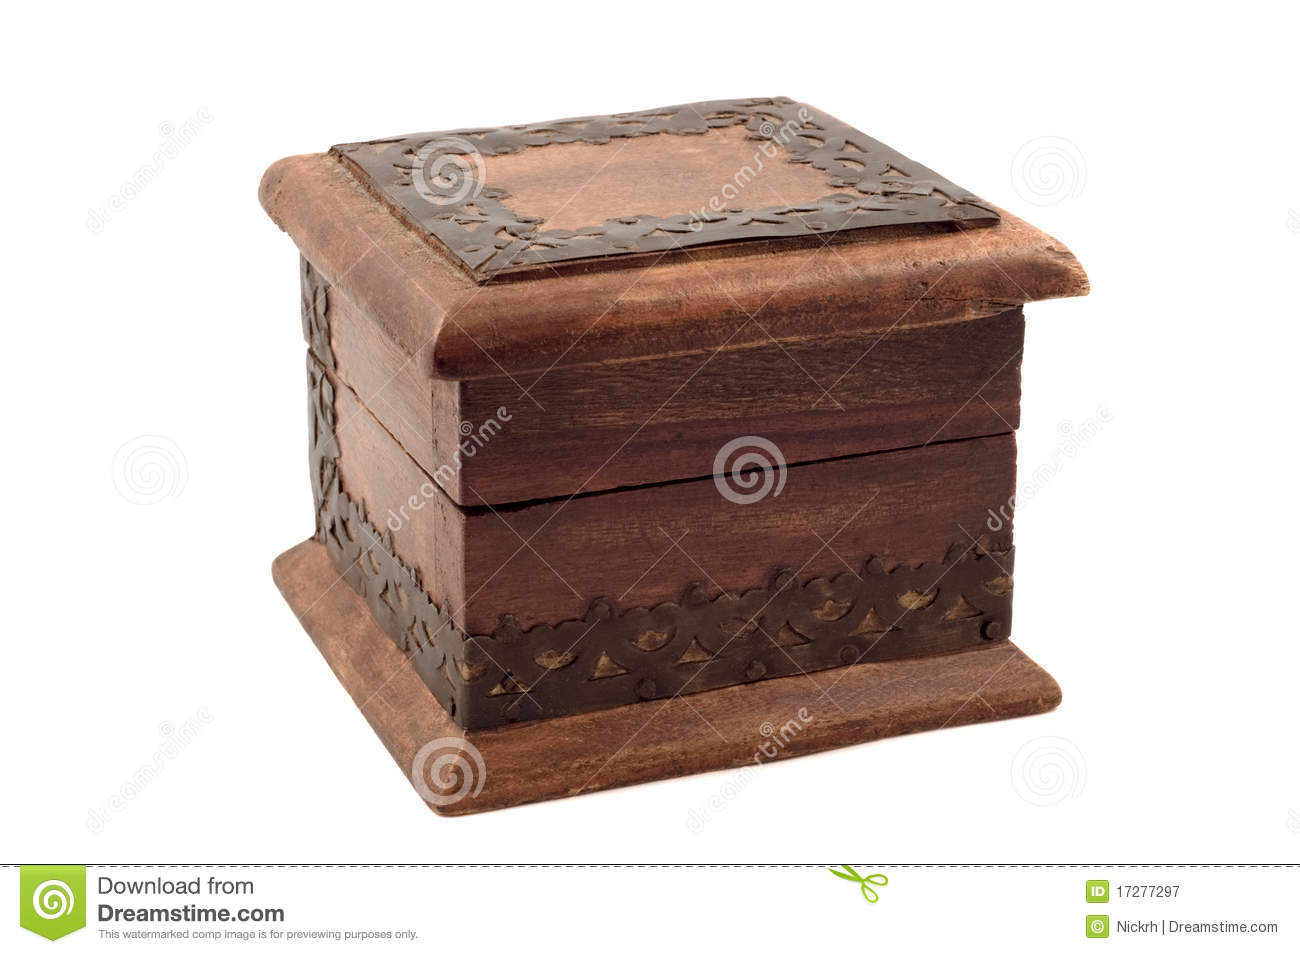 Wooden Jewelry Box Royalty Free Stock Photography - Image: 17277297